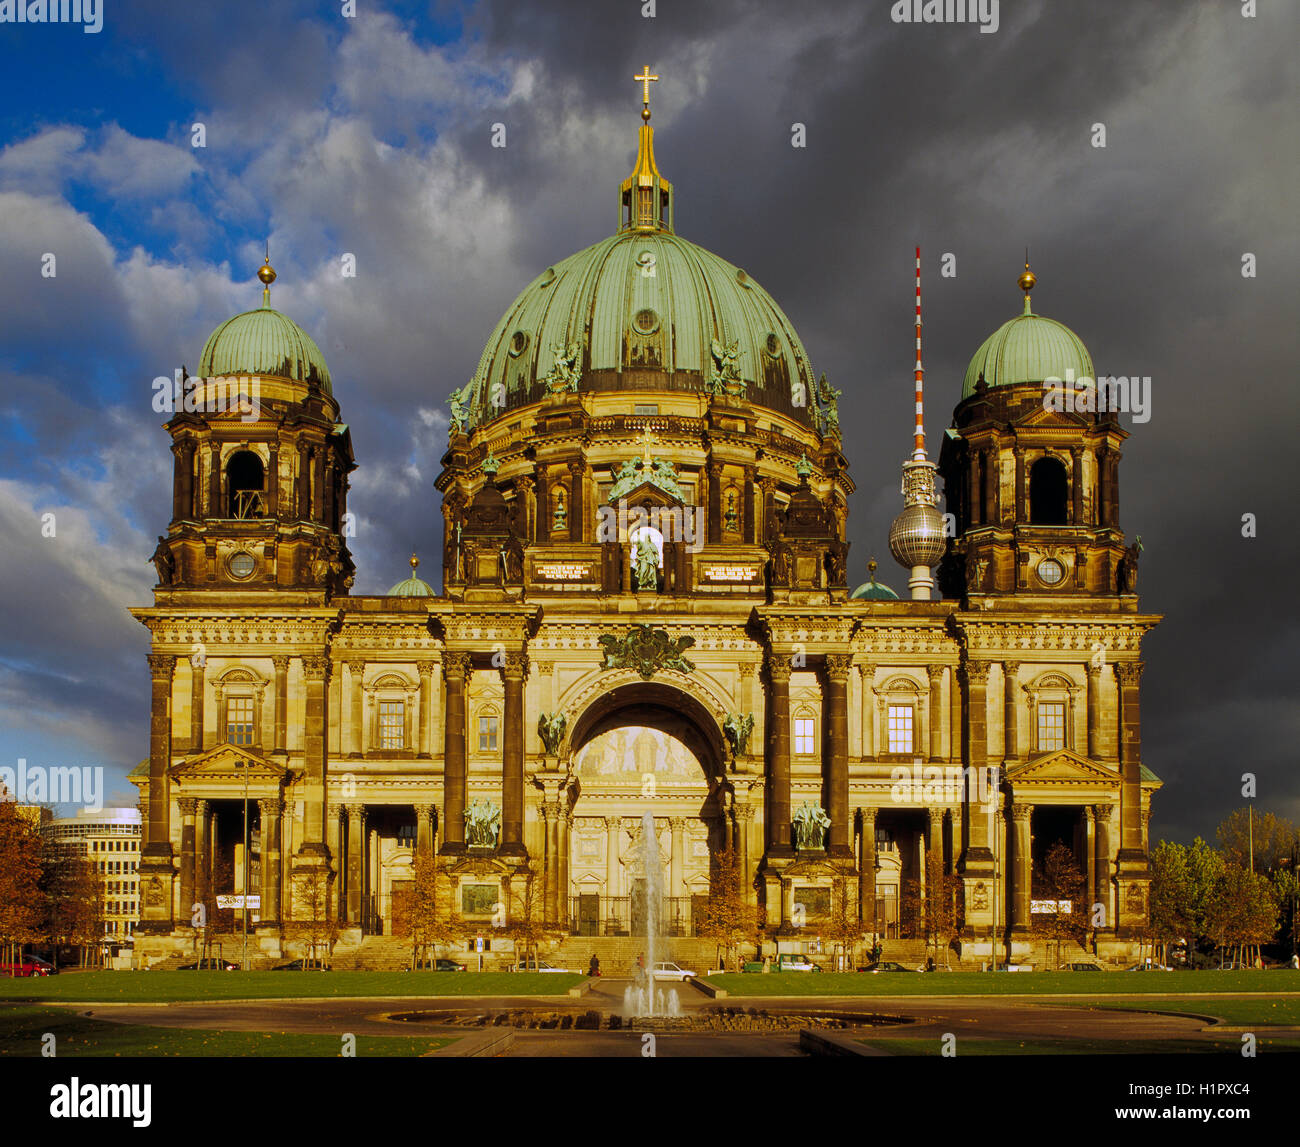 The Berliner Dom, Berlin, Germany - Stock Image